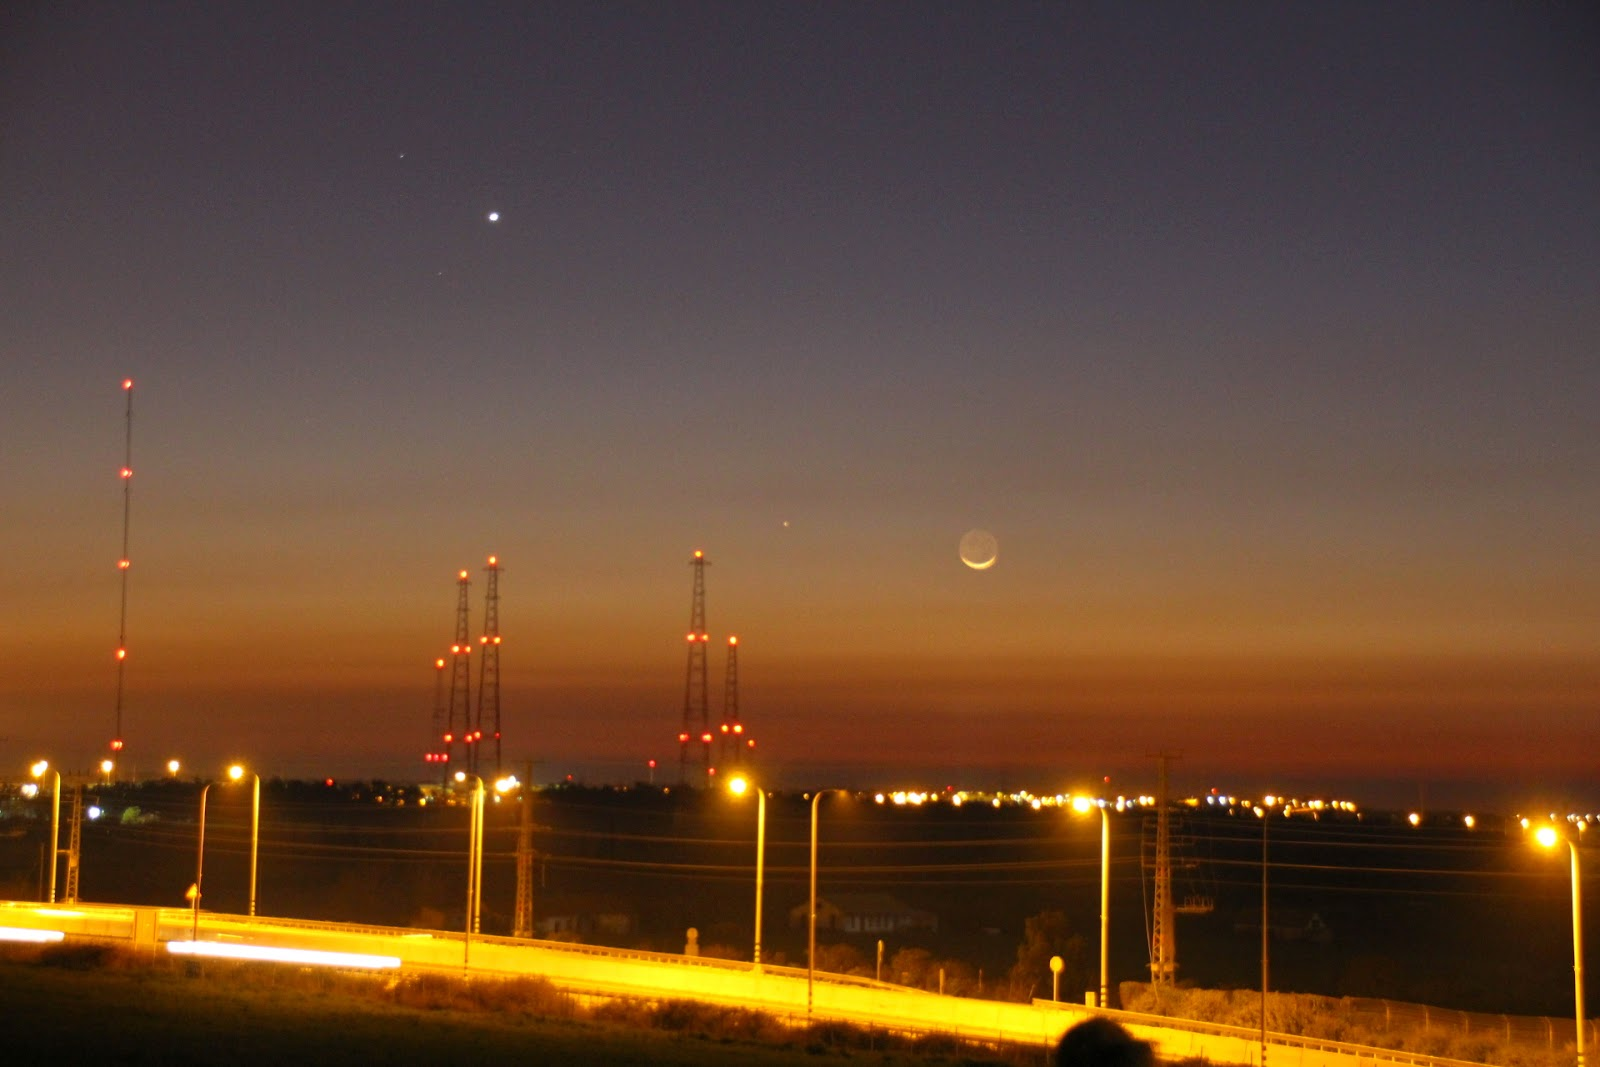 The new moon Venus and Mercury